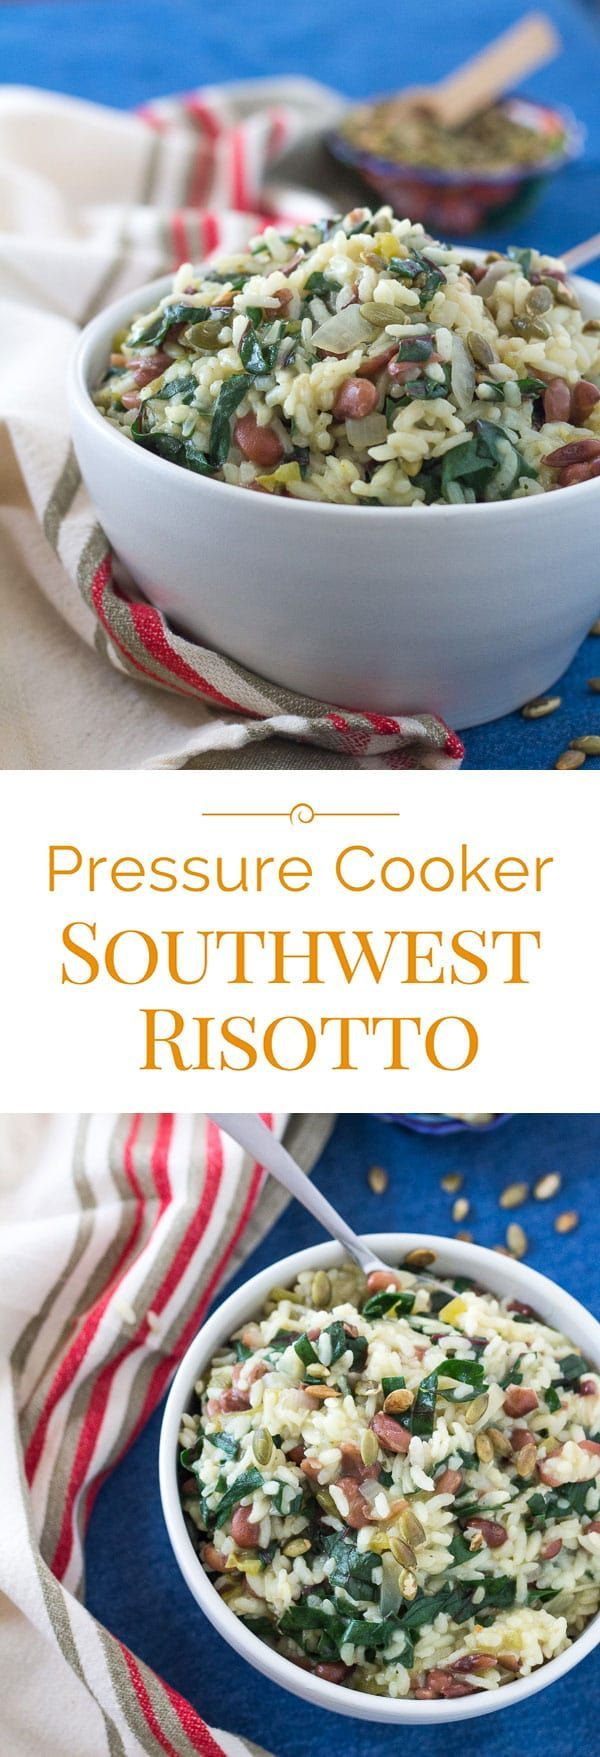 This Pressure Cooker Southwest Pinto Bean Chard Risotto takes a southwestern turn, with the addition of green chiles and spicy pepper cheese.